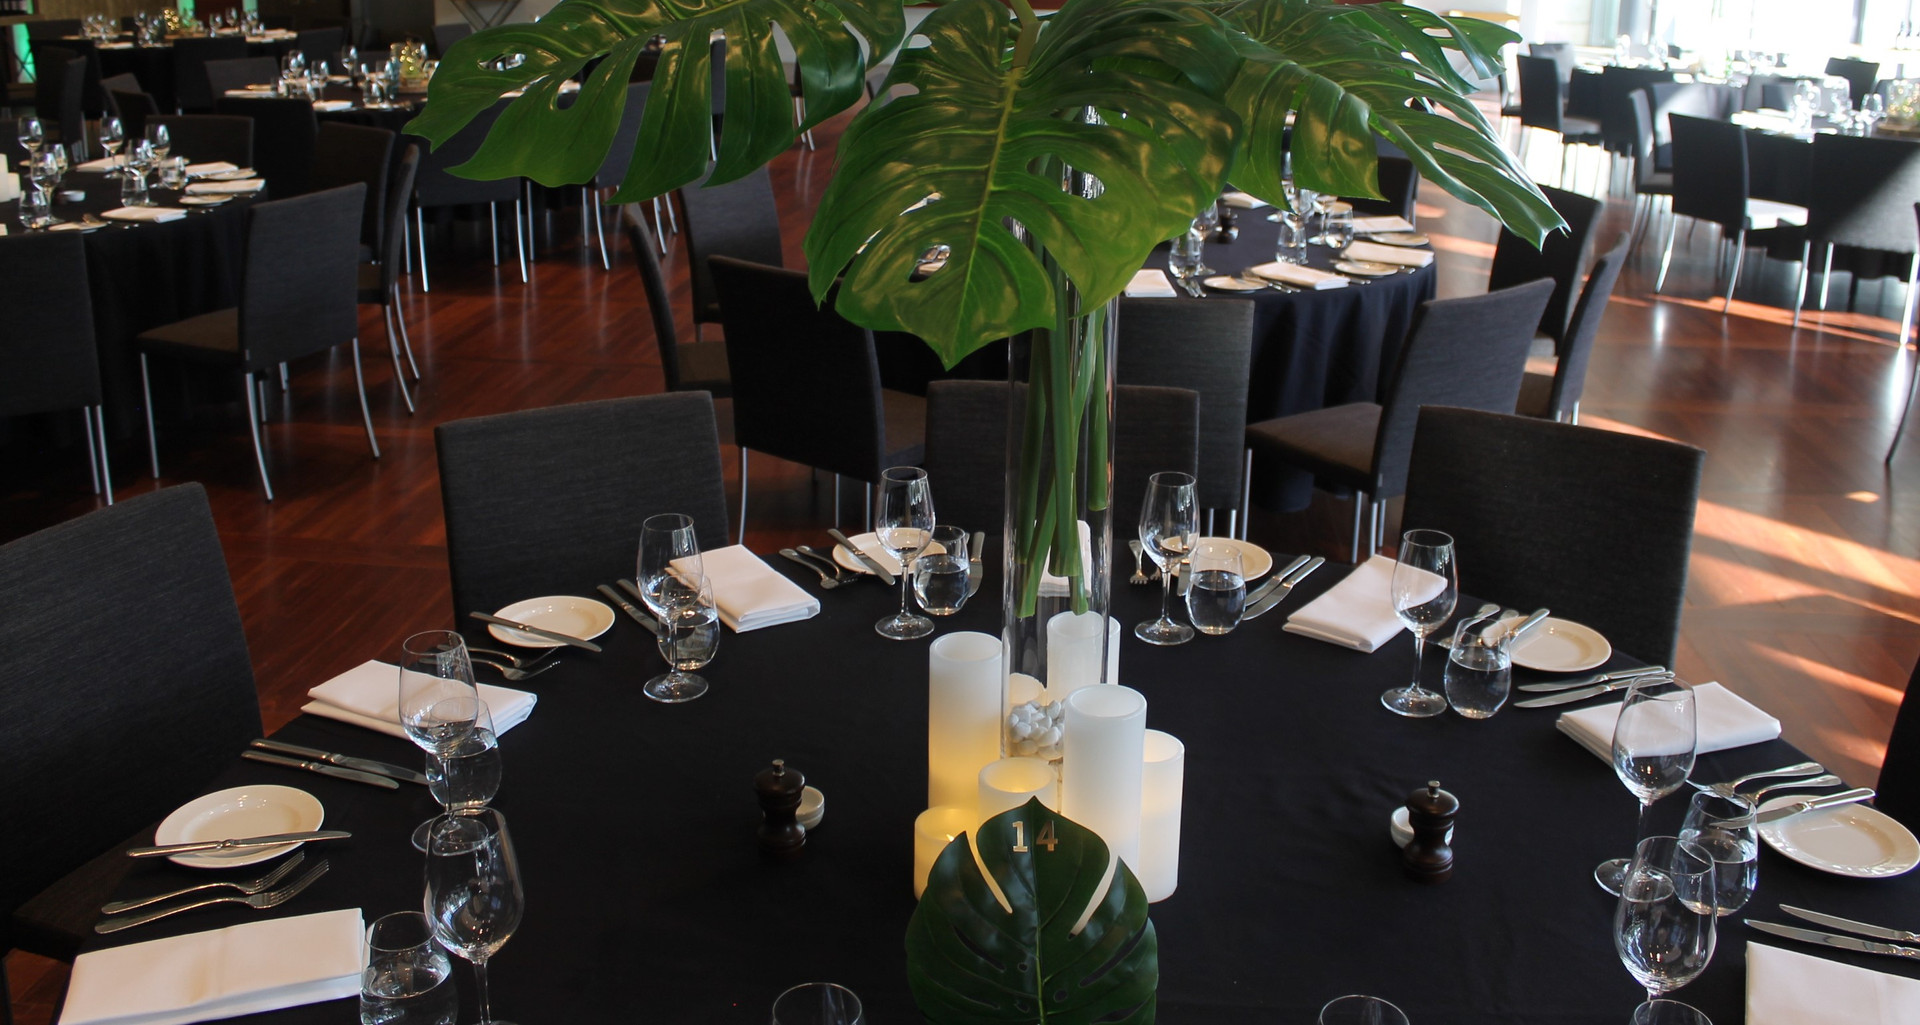 Forrest Theme - Monstera Centrepiece